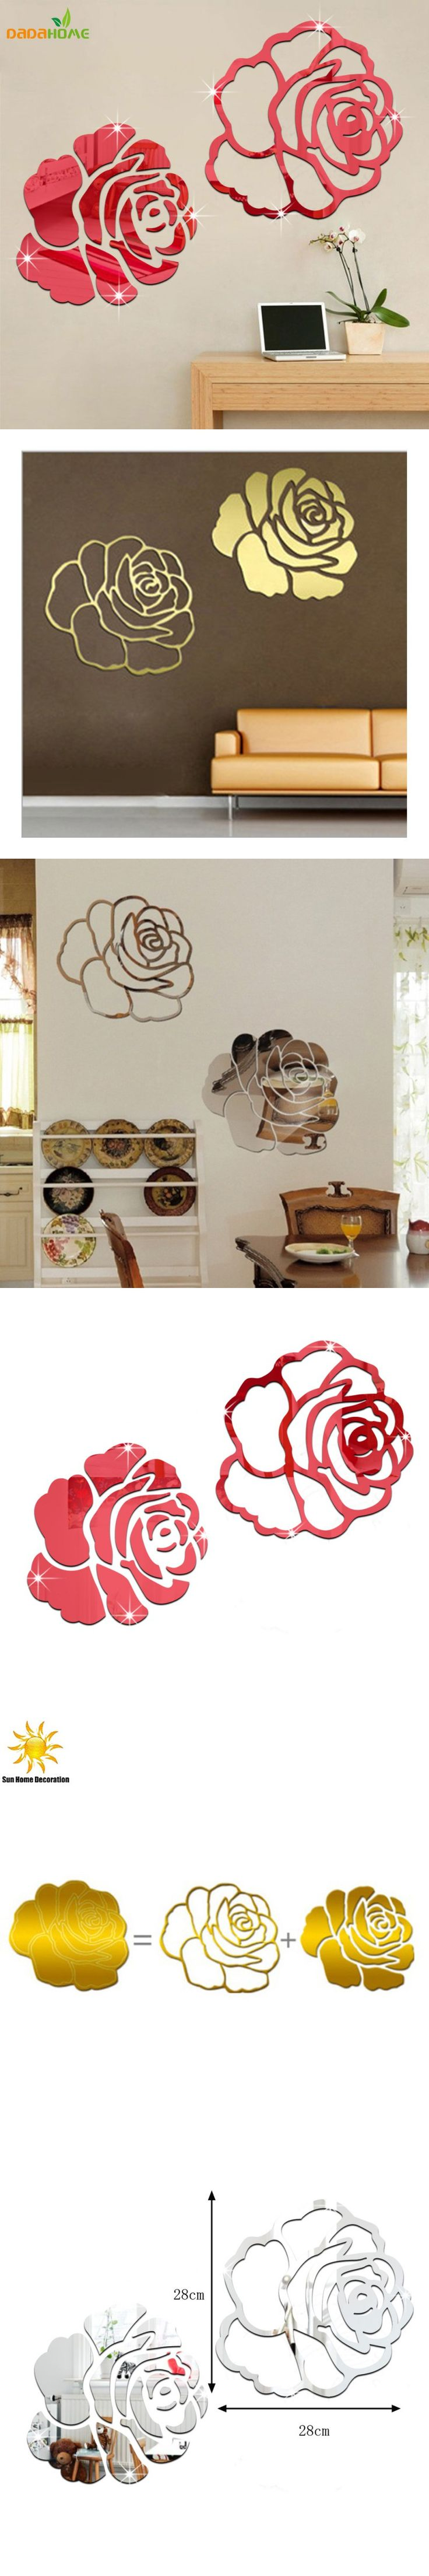 best 20 autocollant mural ideas on pinterest autocollants rose 3d mirror wall stickers for wall decoration diy home decor living room wall decal autocollant mural vinilo pared